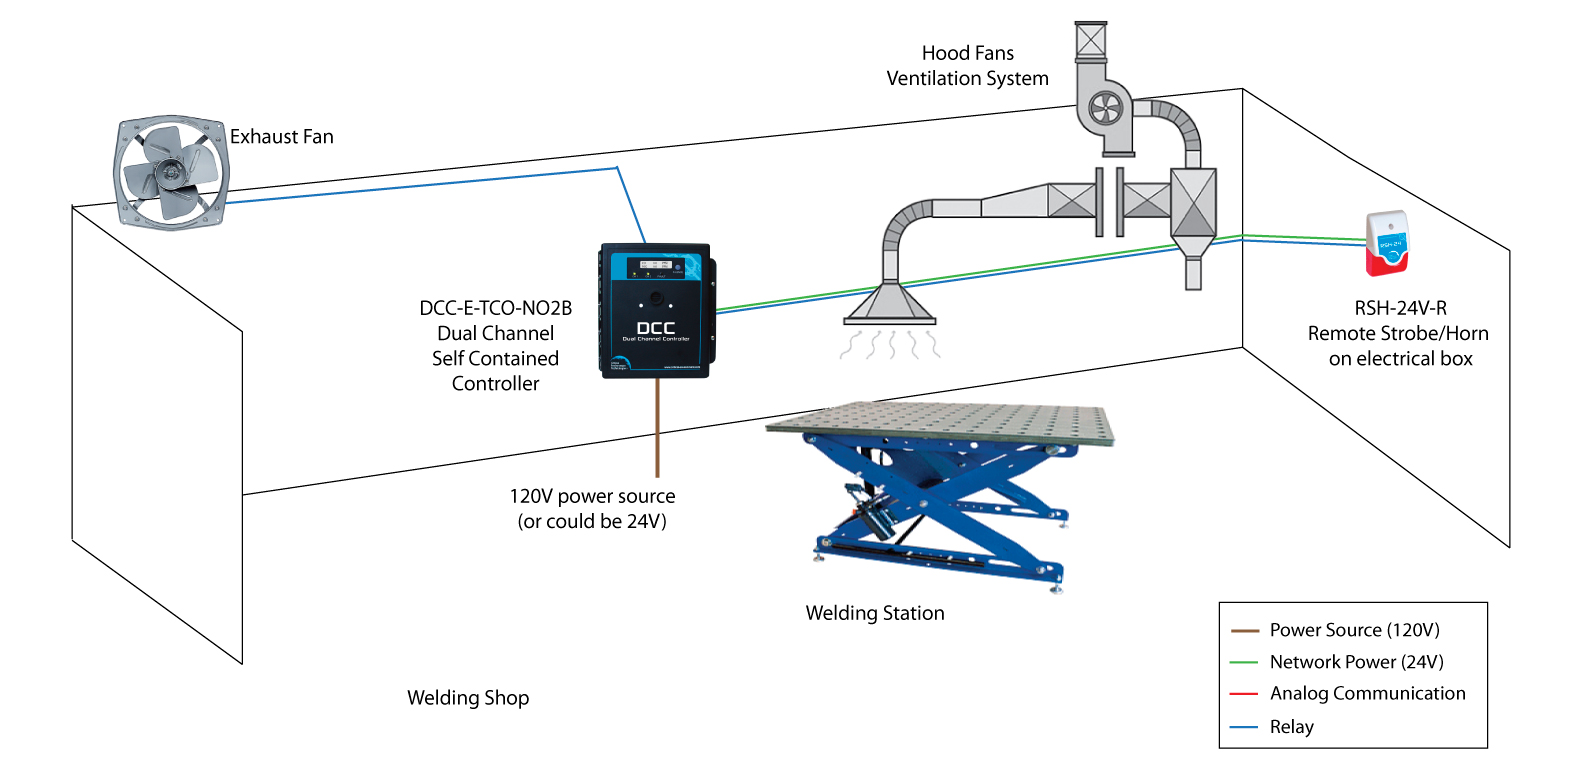 Welding Shop Application Dcc Self Contained Controller How To Read A Diagram Activities Occur In Many Industries And The Work Environments Vary Size Layout Setup When Planning Installation Mounting Locations For